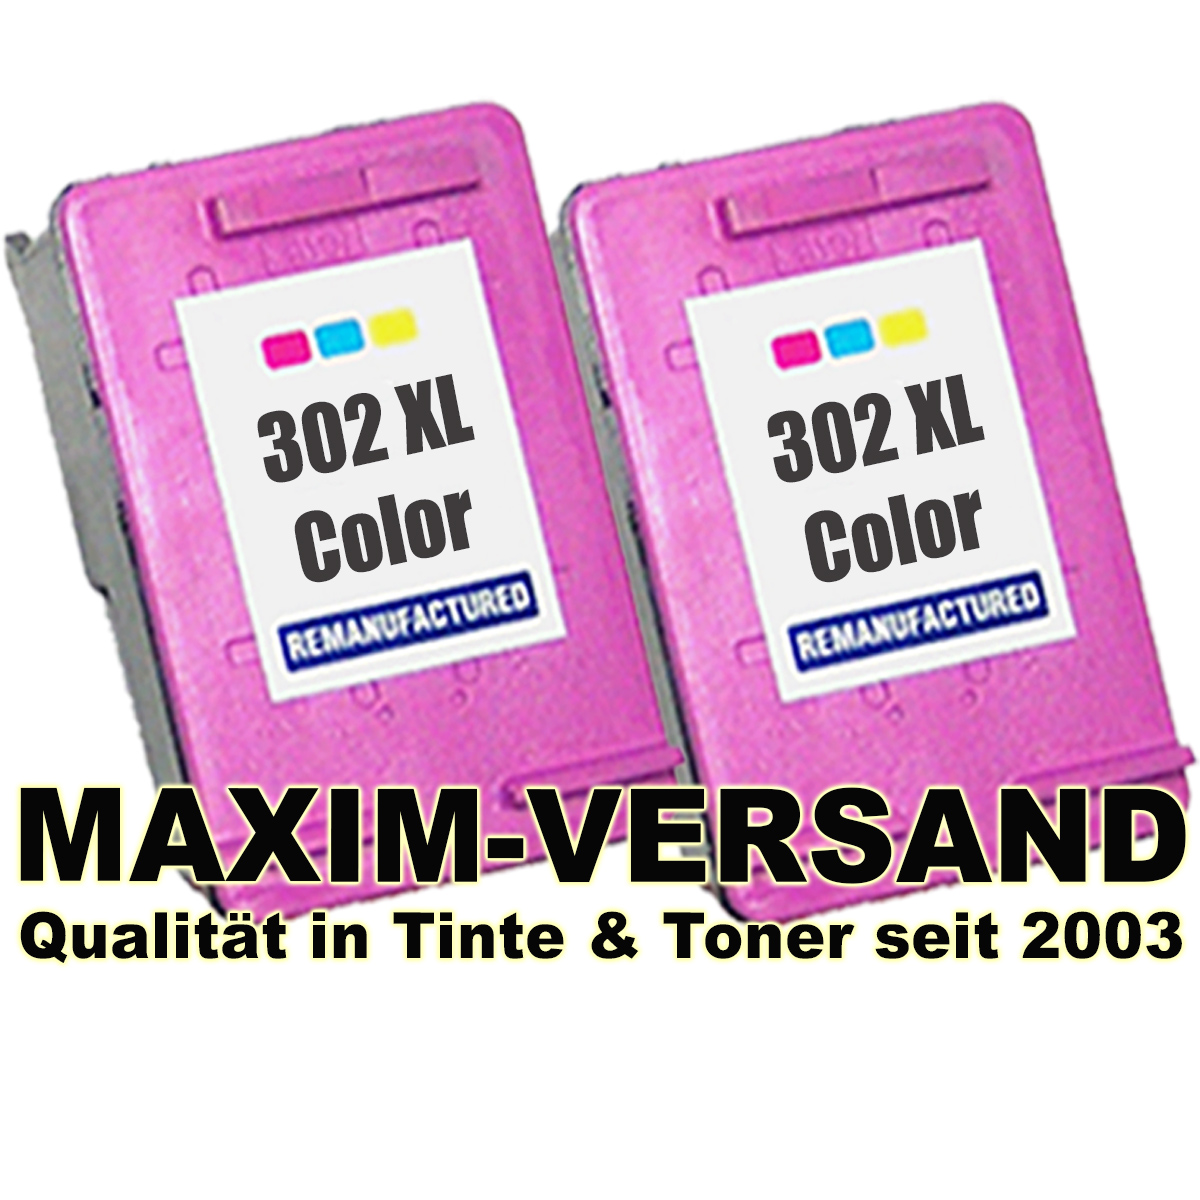 HP 302 XL farbig / color - kompatibel - (2er Pack)